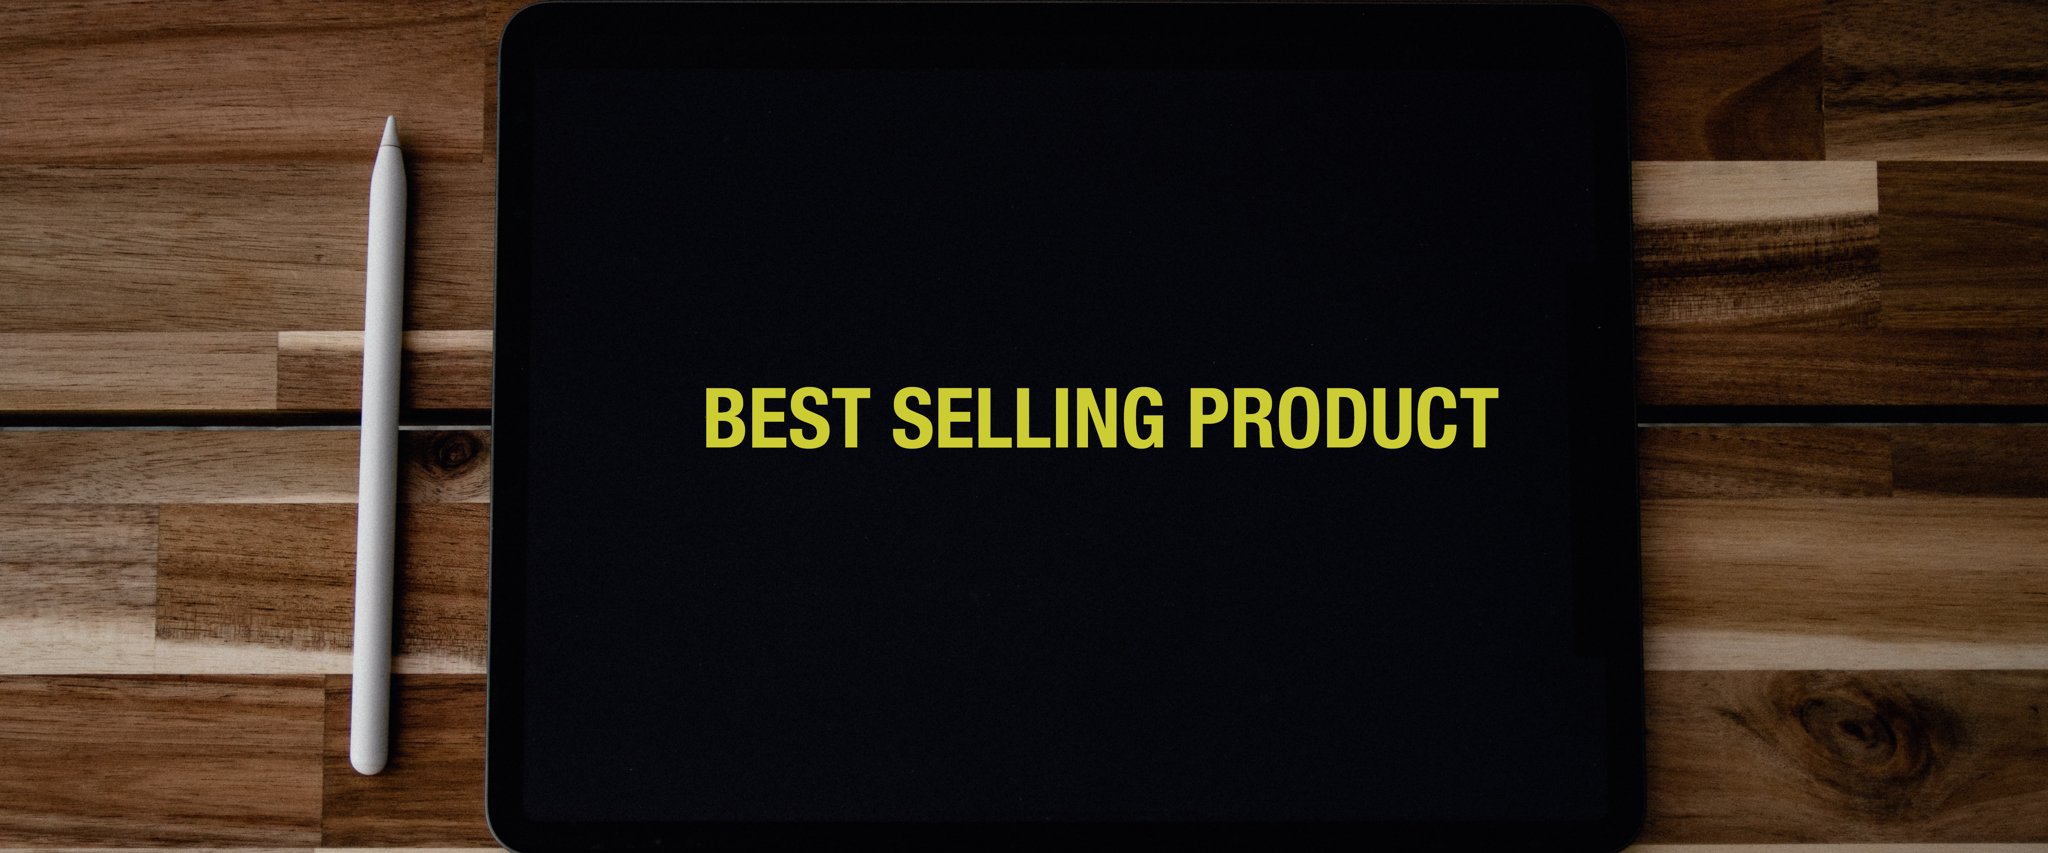 BEST SELLING PRODUCT